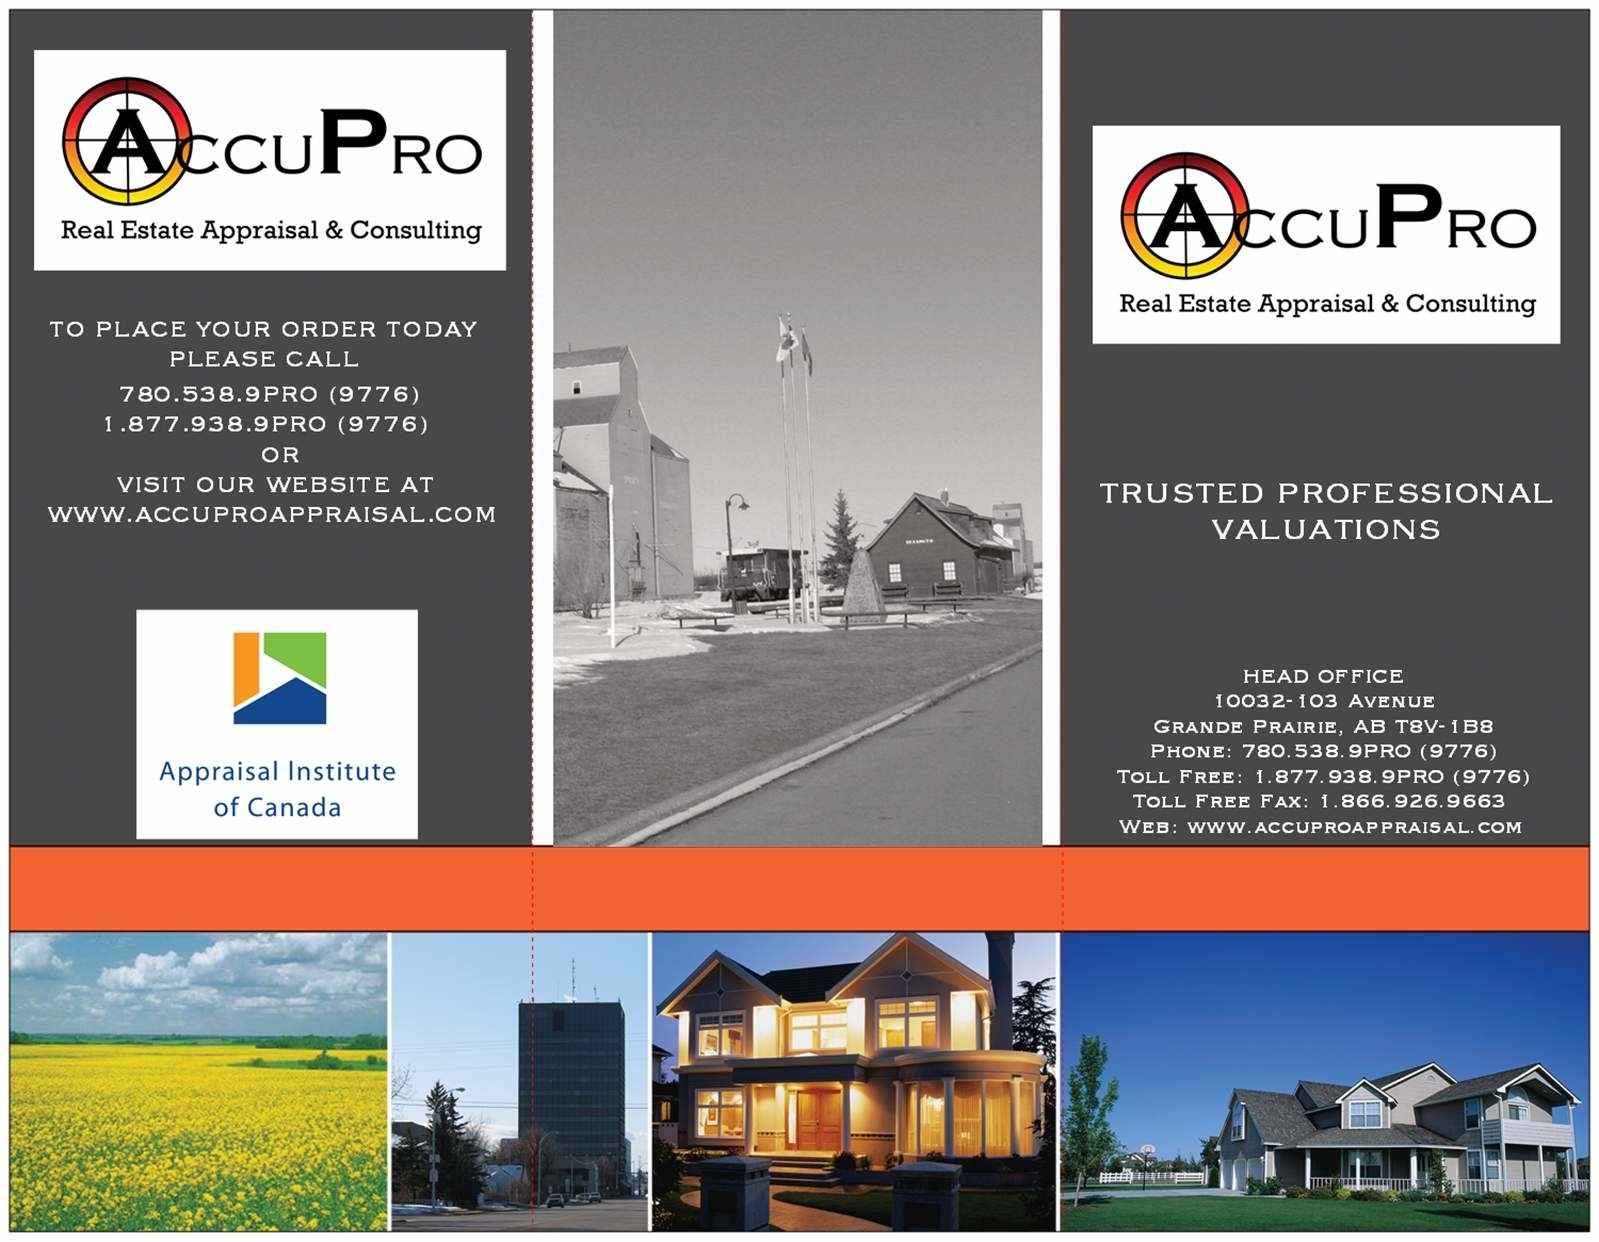 AccuPro Real Estate Appraisal & Consulting Grande Prairie (780)538-9776